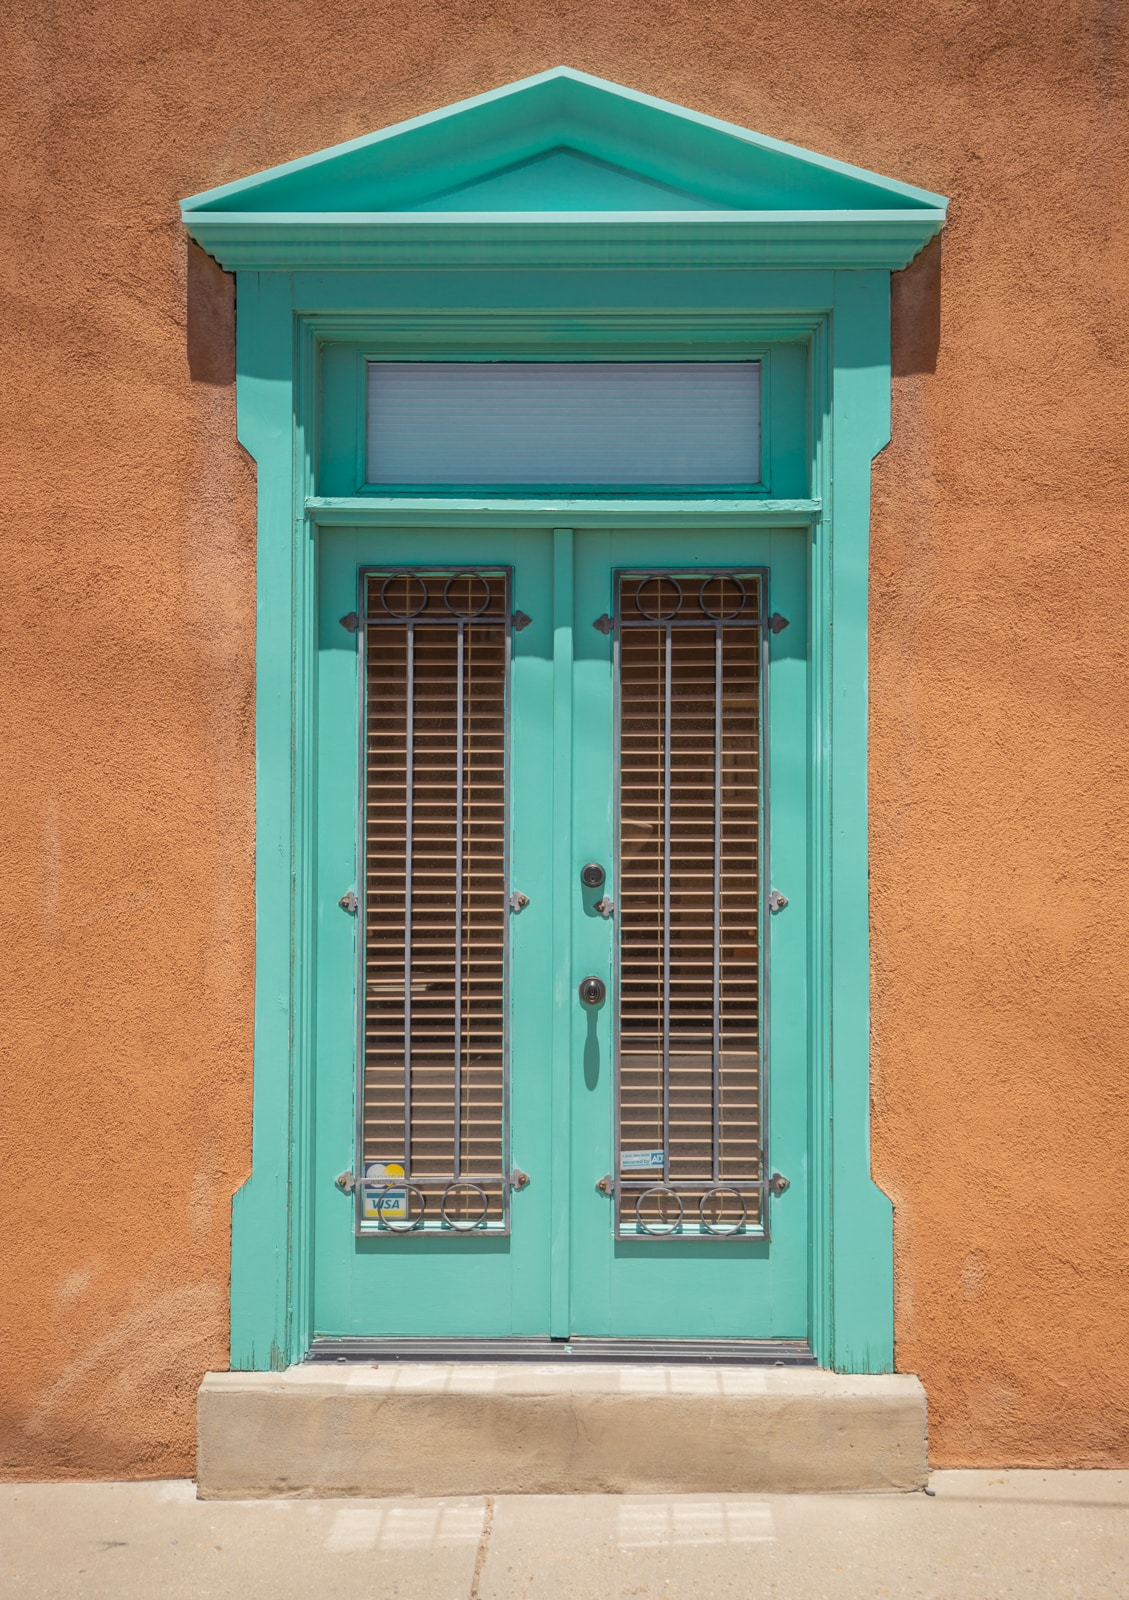 A turquoise window frame in an adobe style building